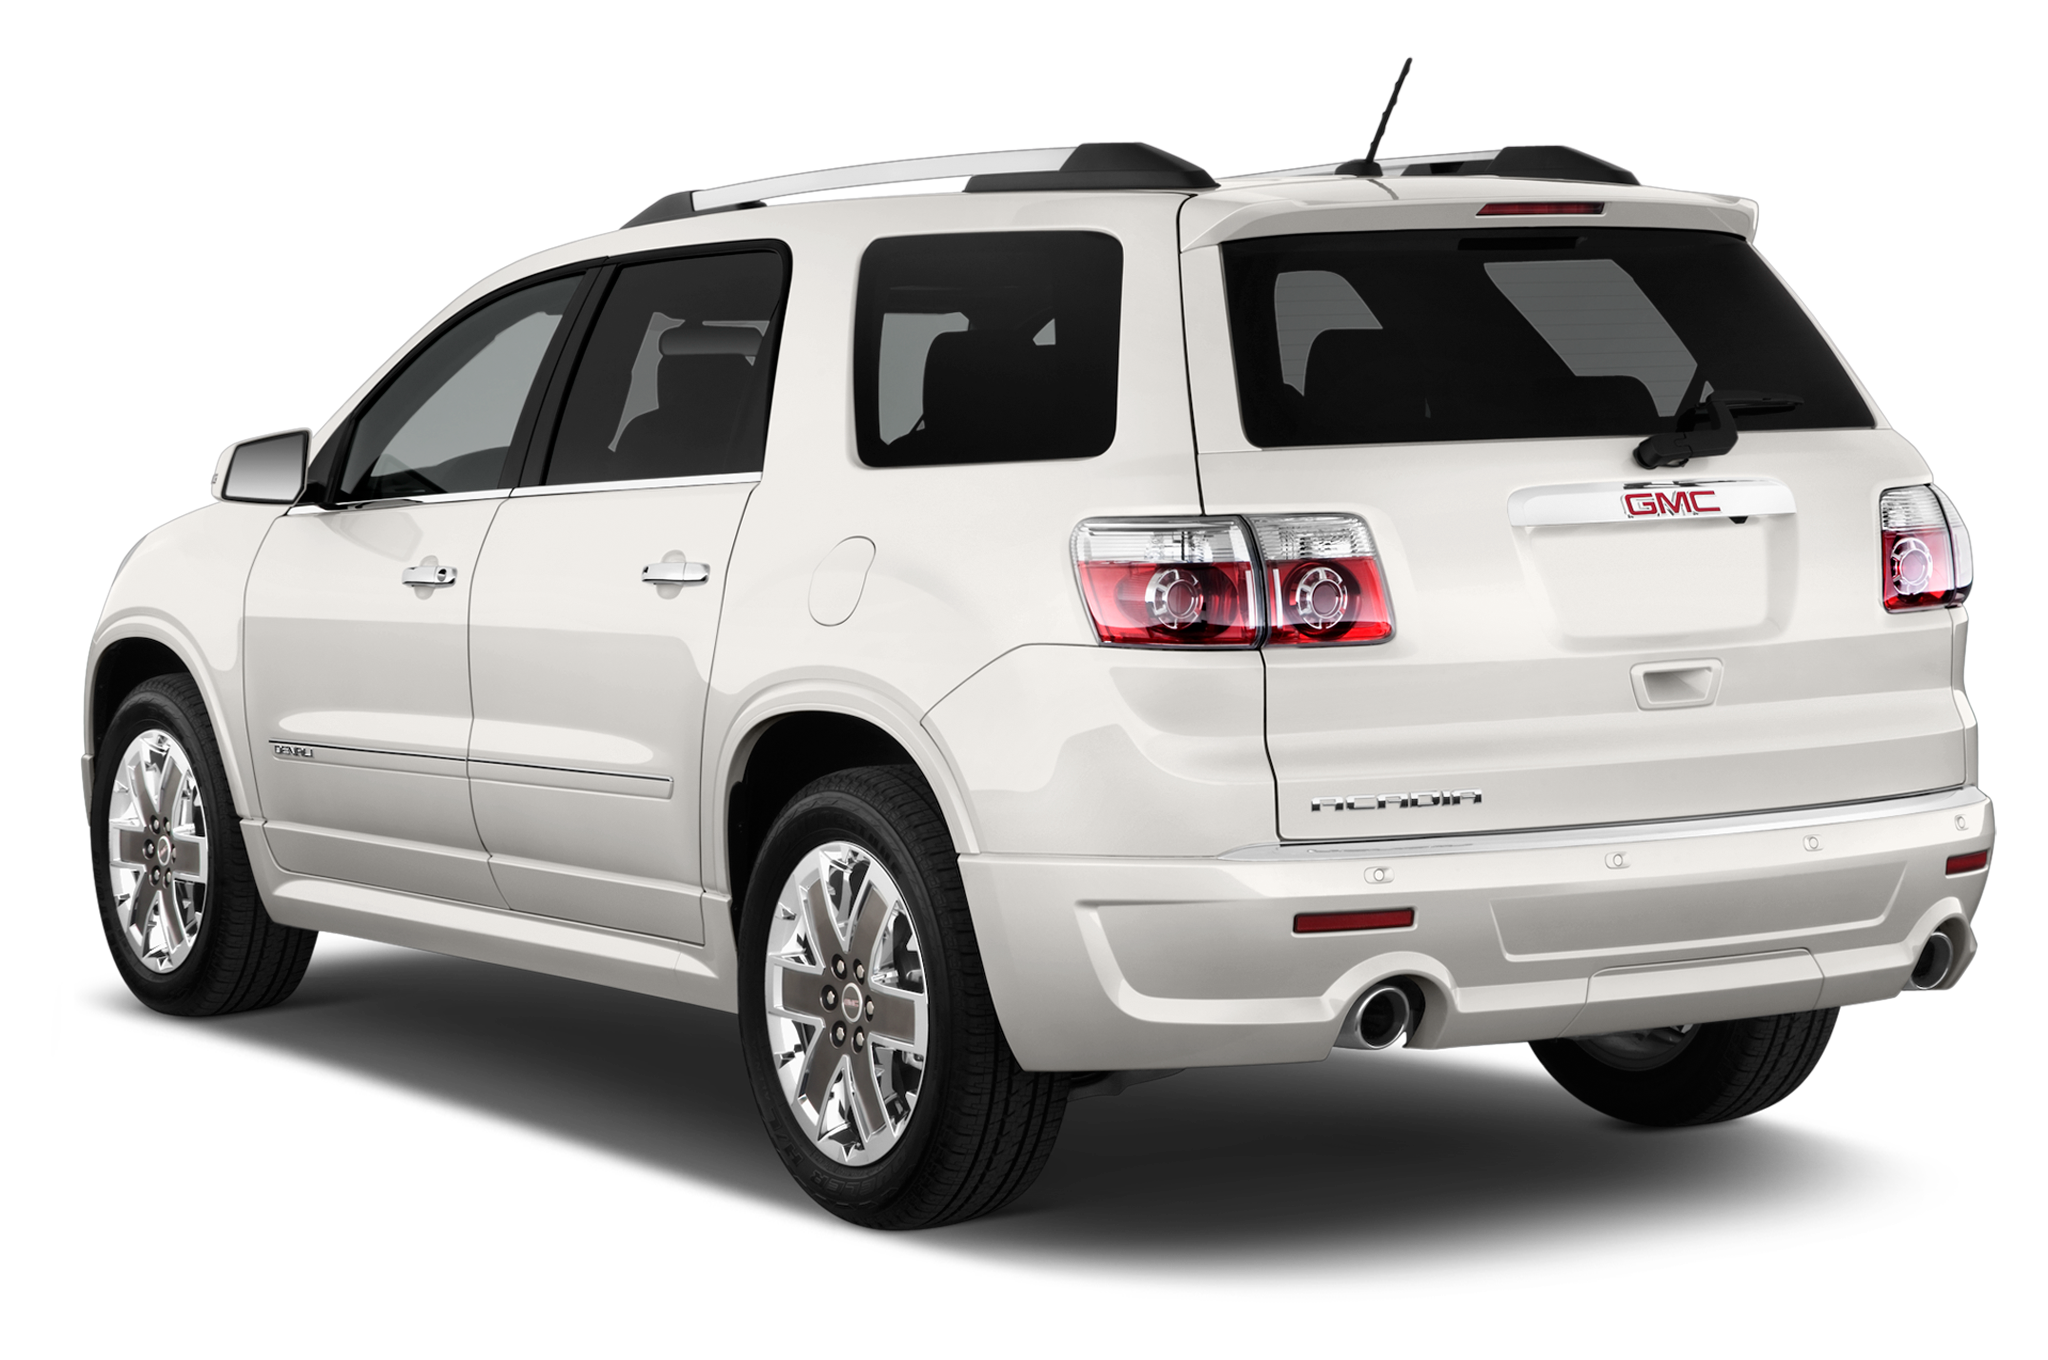 cuv freshened in wardsauto technology shows gmc acadia gm chicago